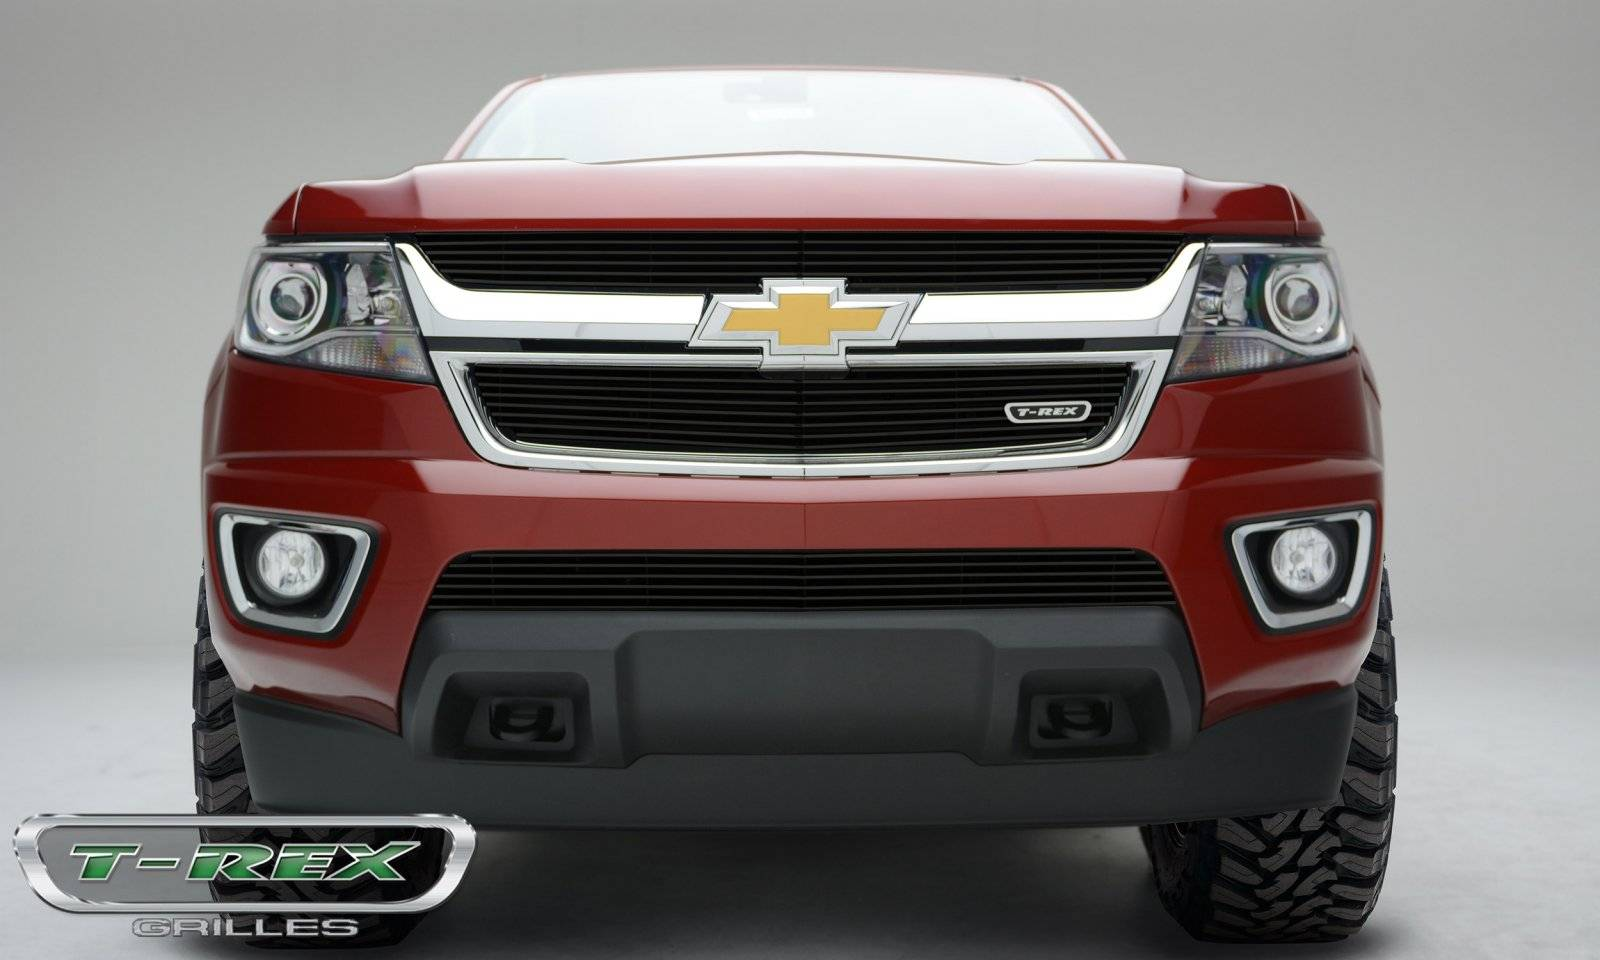 T-REX Chevrolet Colorado - Billet Series - Main Grille - Overlay with Black Powdercoat Finish - Pt # 21267B